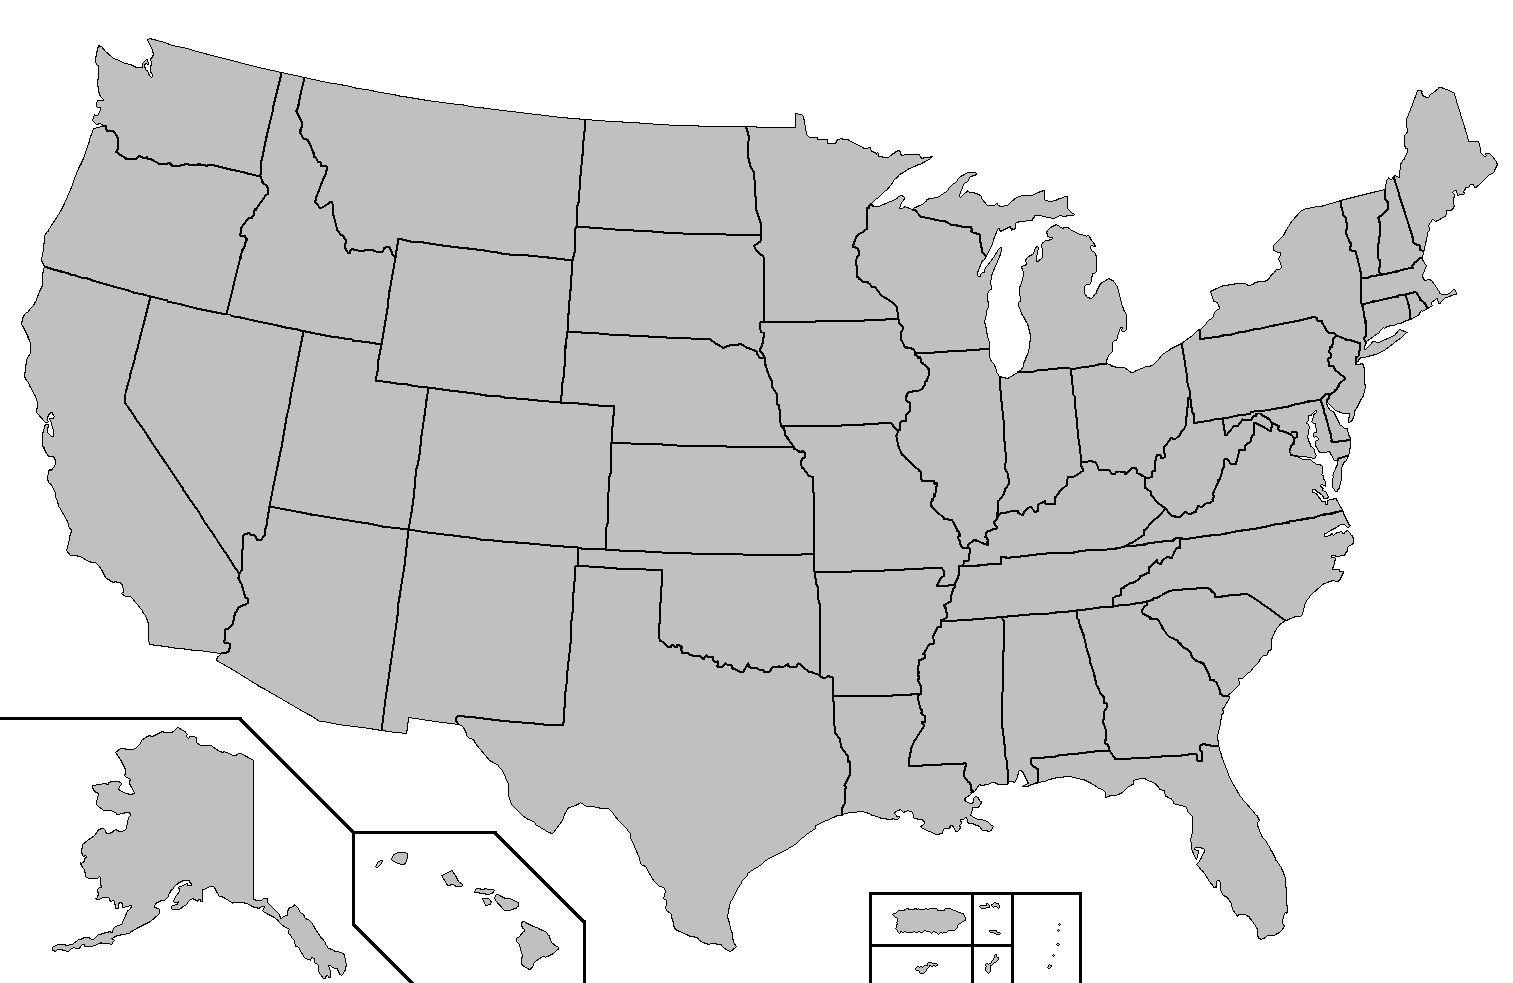 FileUS Map Statespng Wikimedia Commons US Maps USA State Maps - Us map state names